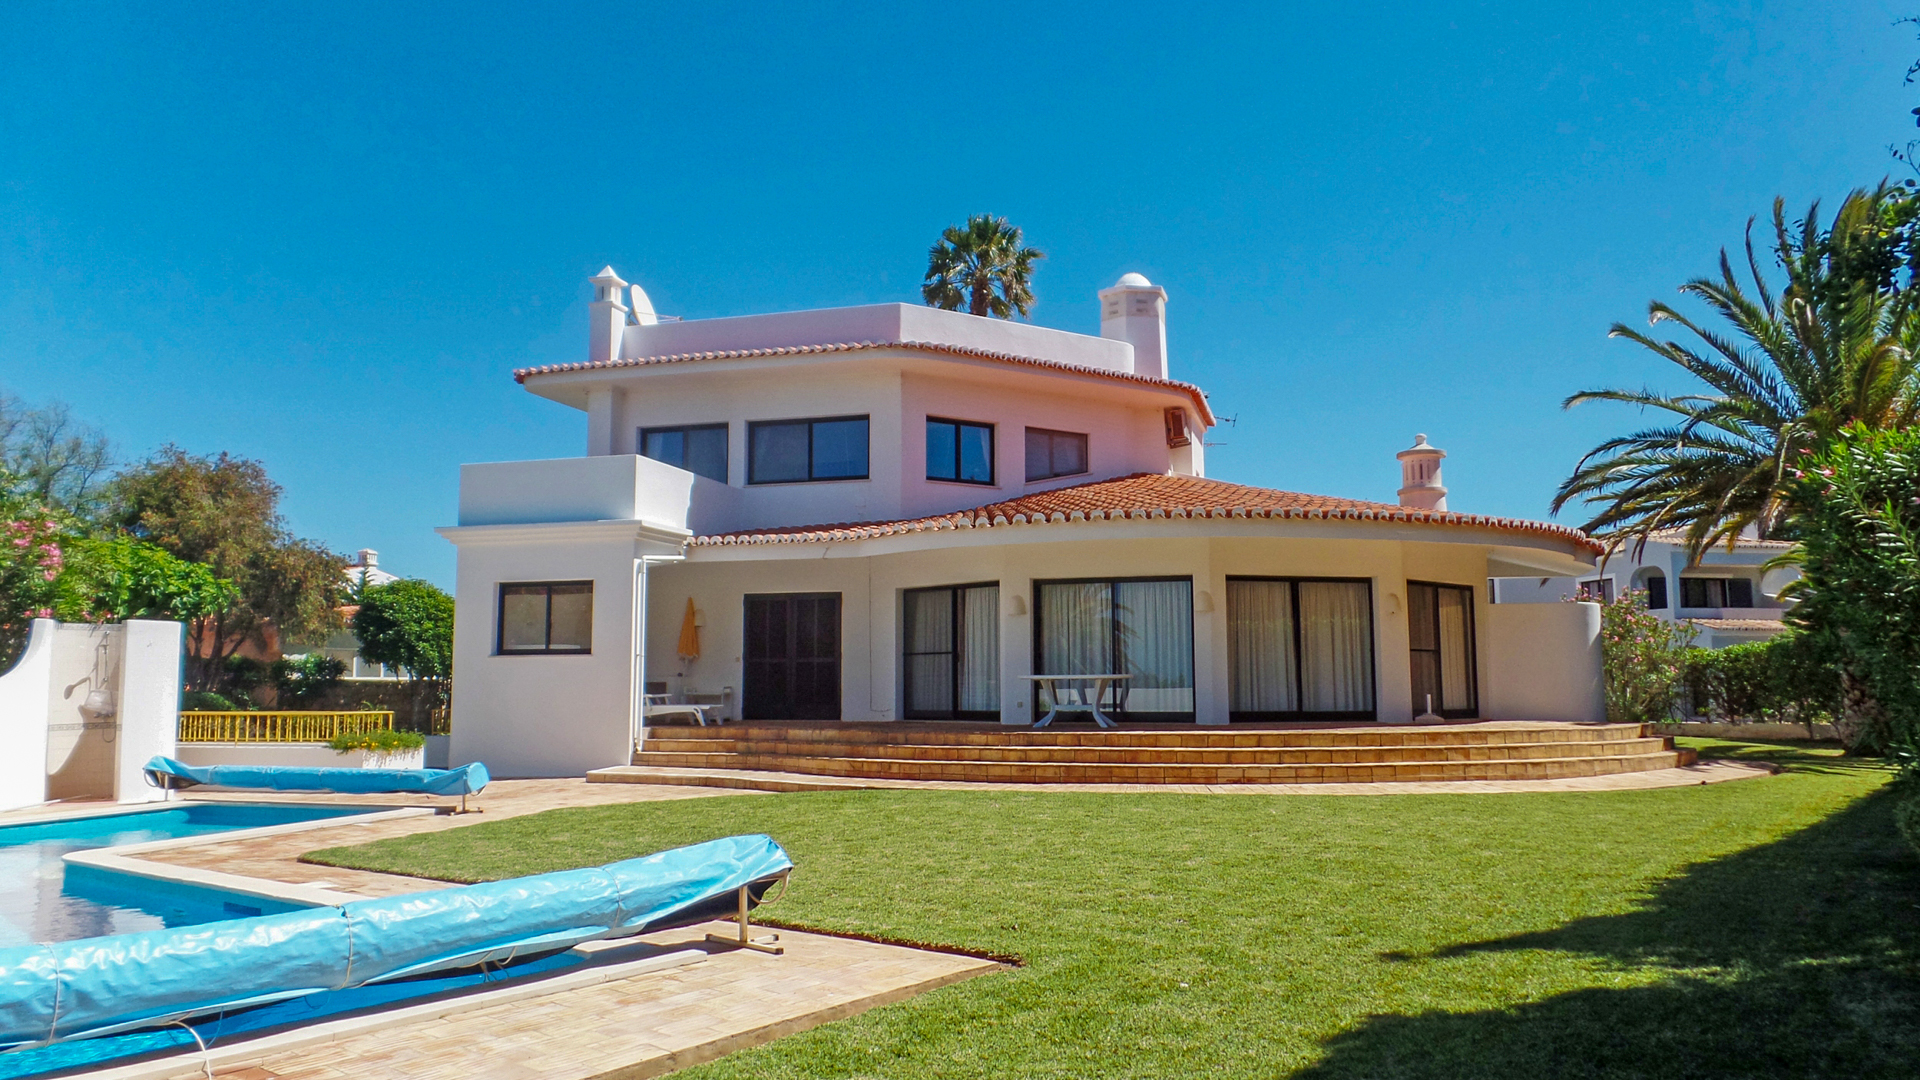 3+1 bedroom villa with pool and sea view close to the beach carvoeiro algarve